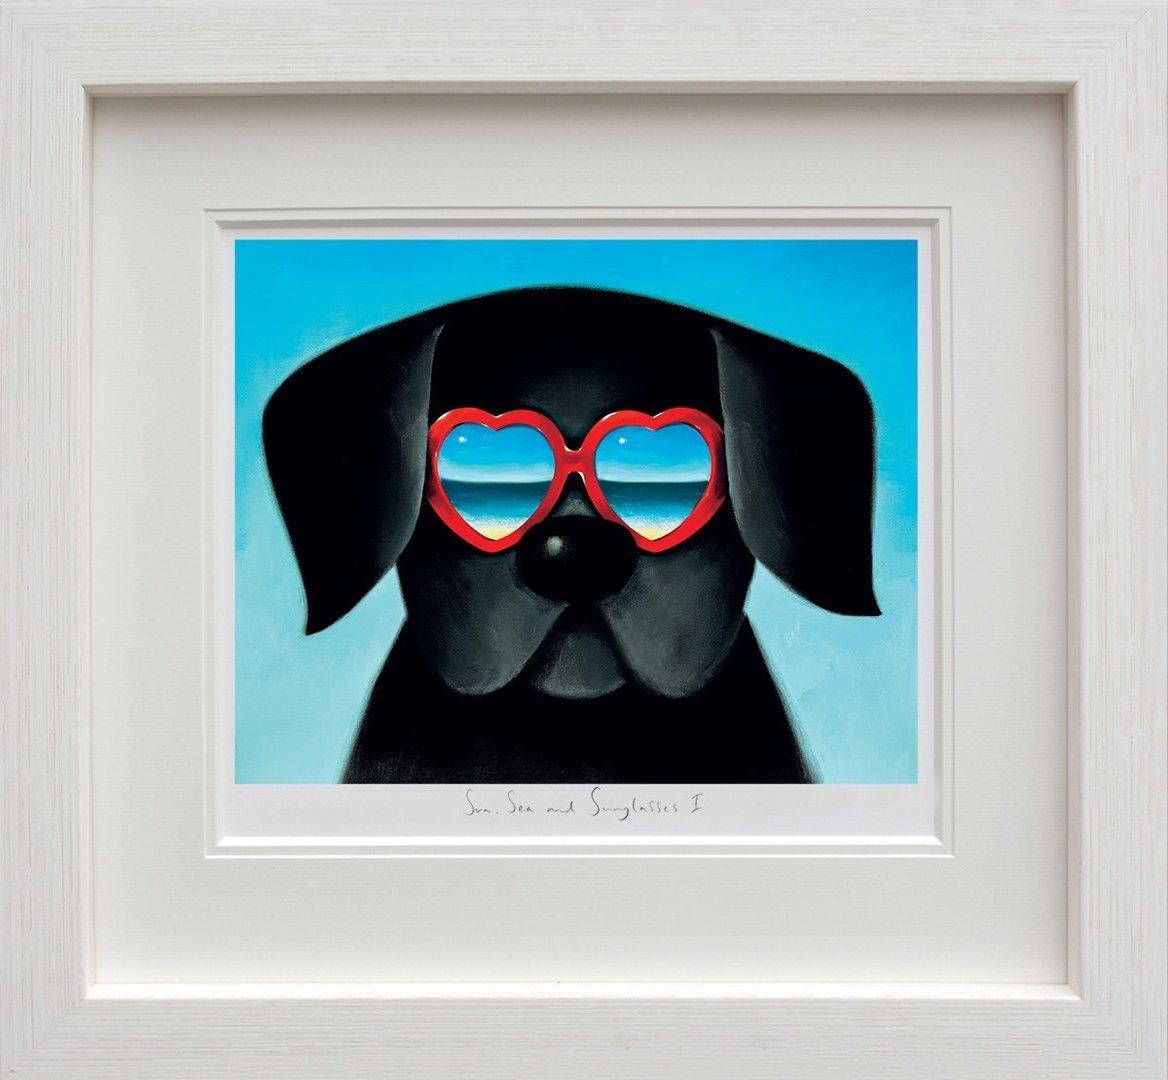 Sun, Sea and Sunglasses I by Doug Hyde - Limited Edition print ZHYD674